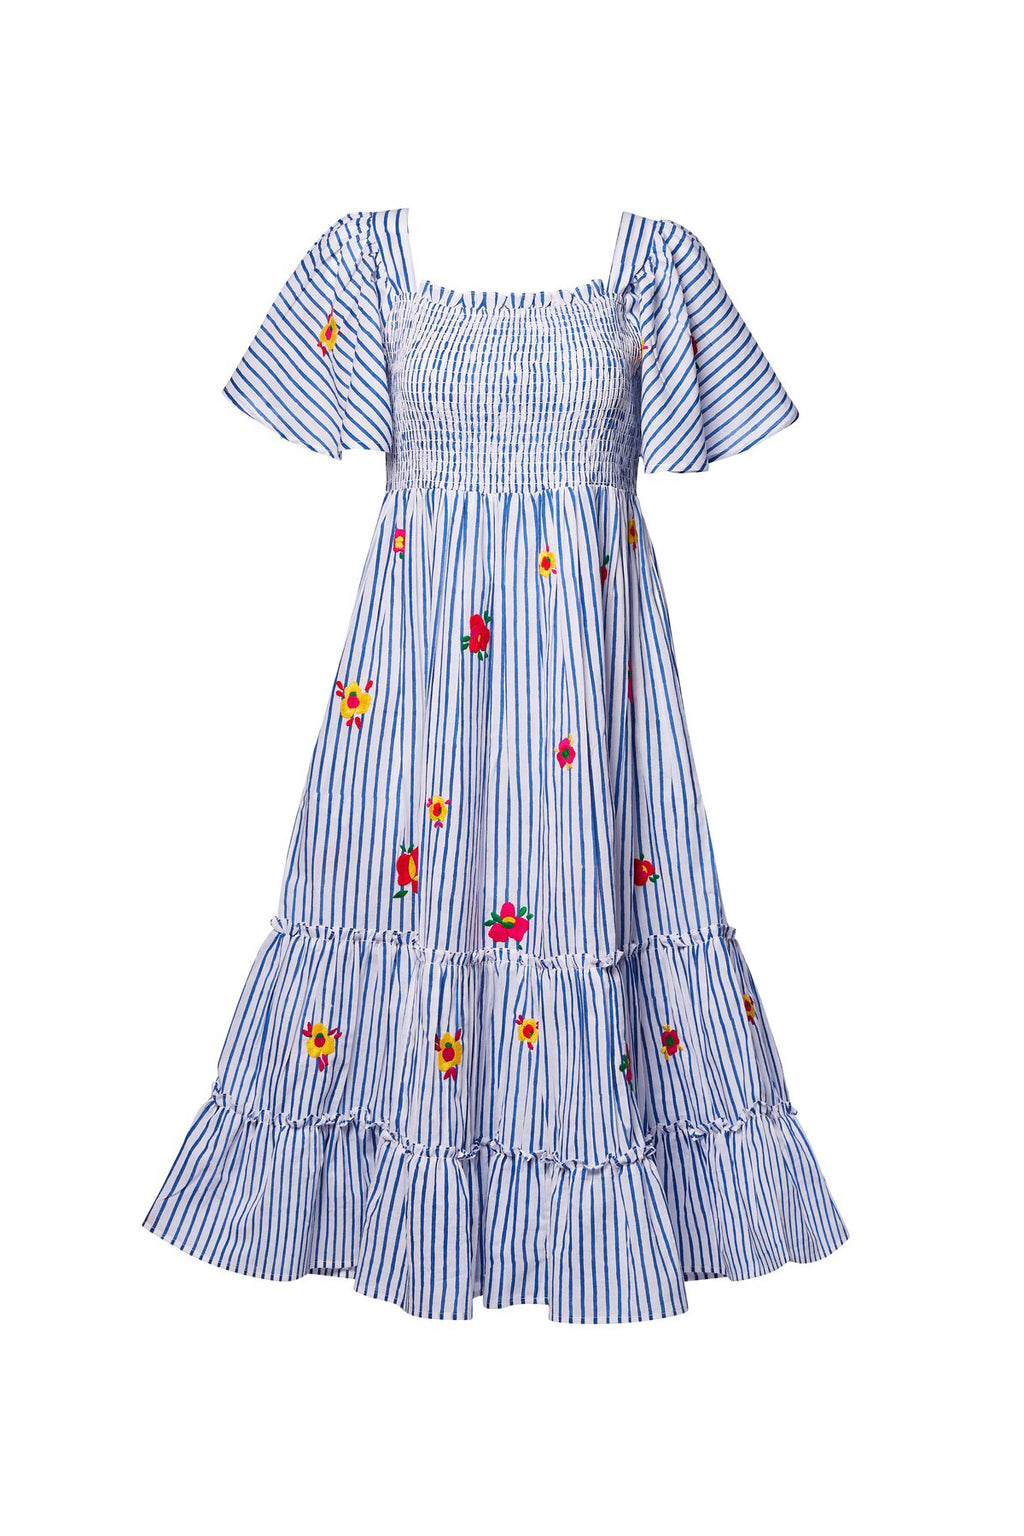 PCP - Lolita Dress online at PAYA boutique